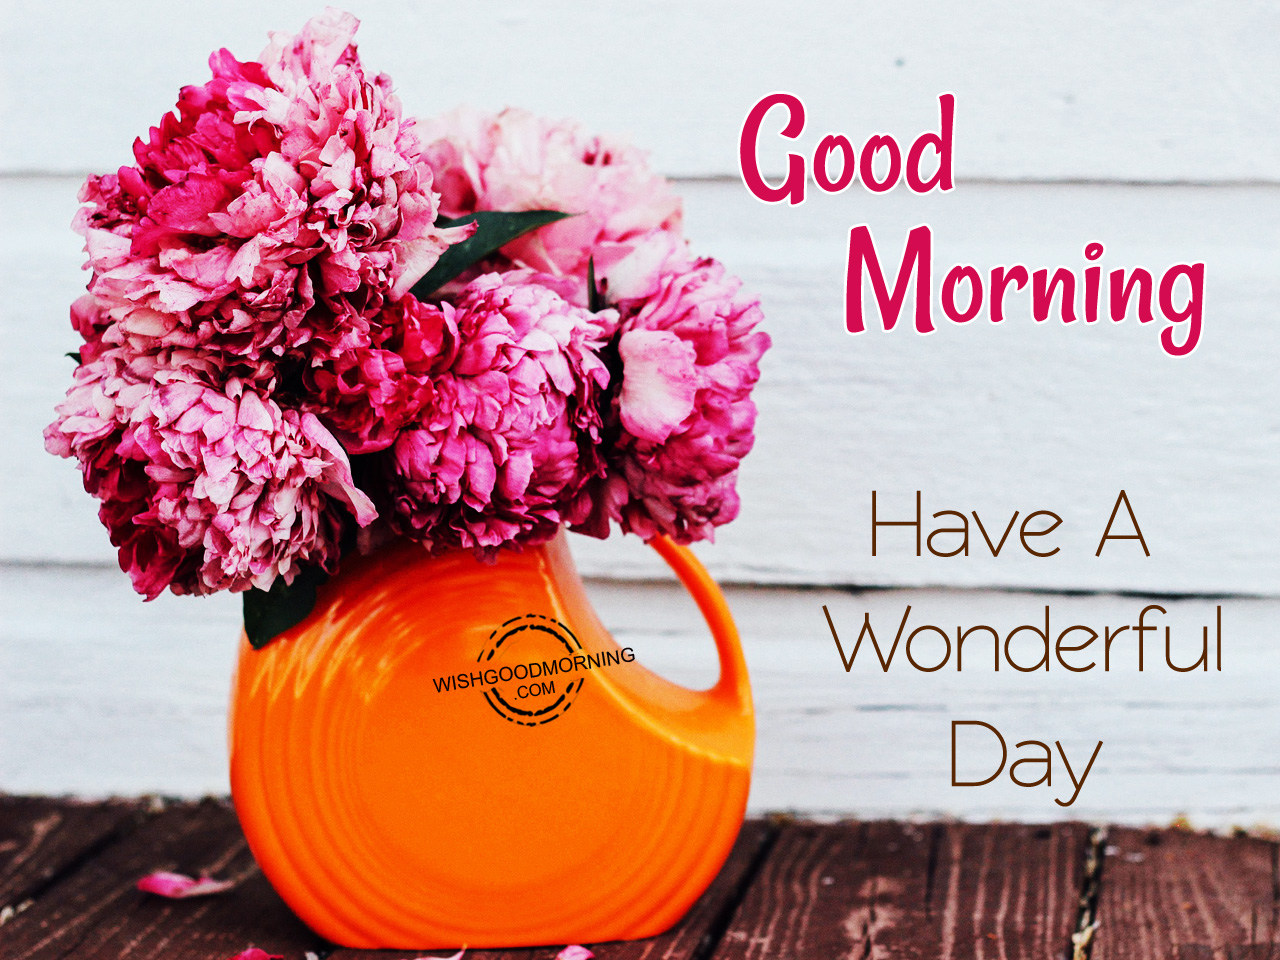 Good Morning Have A Great Day : Good morning wishes pictures